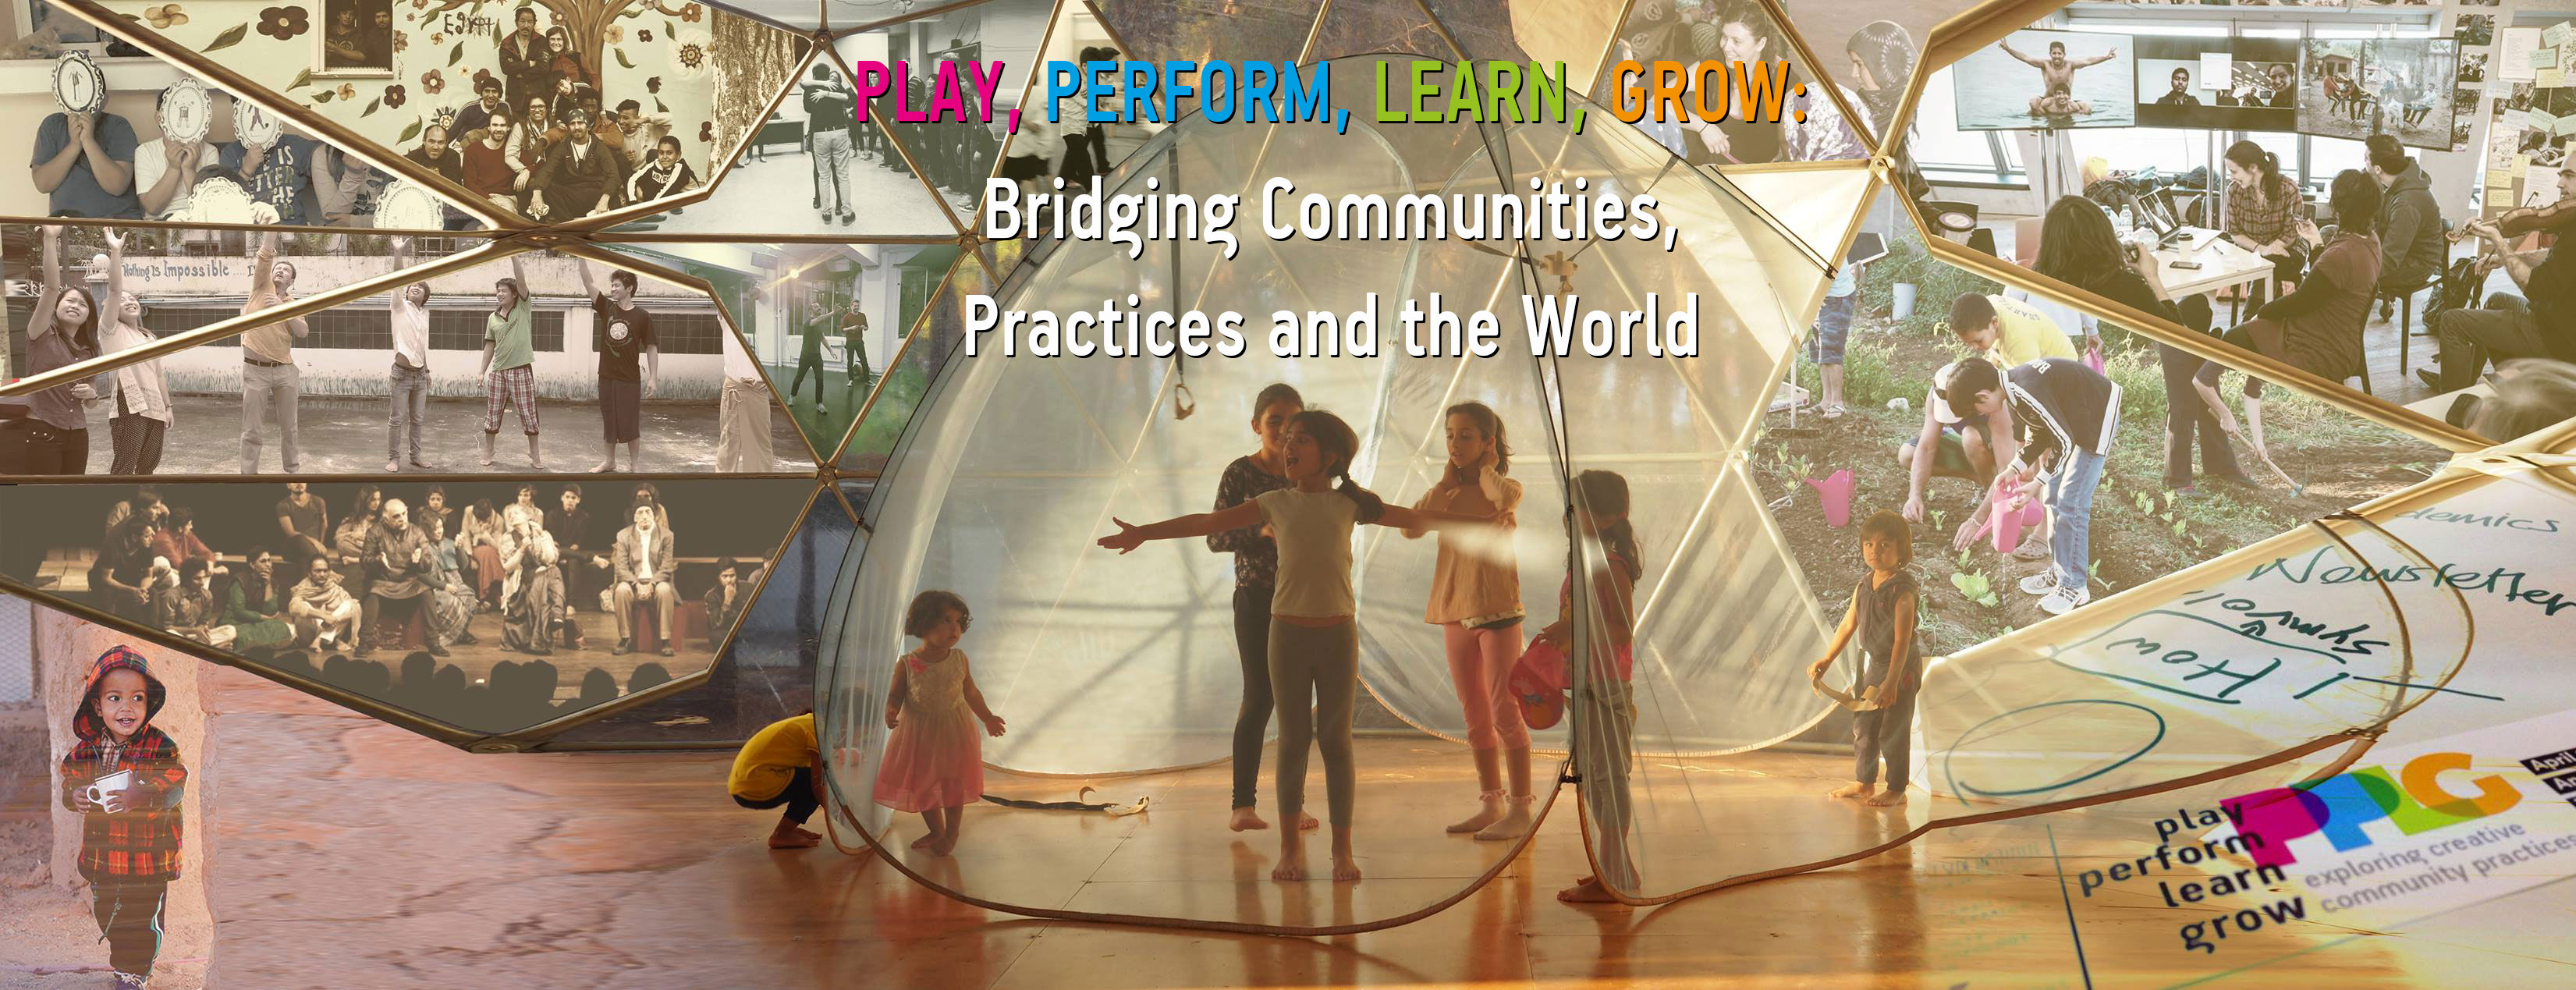 PPLG2019 Play, Perform, Learn, Grow – Bridging Communities, Practices and the World